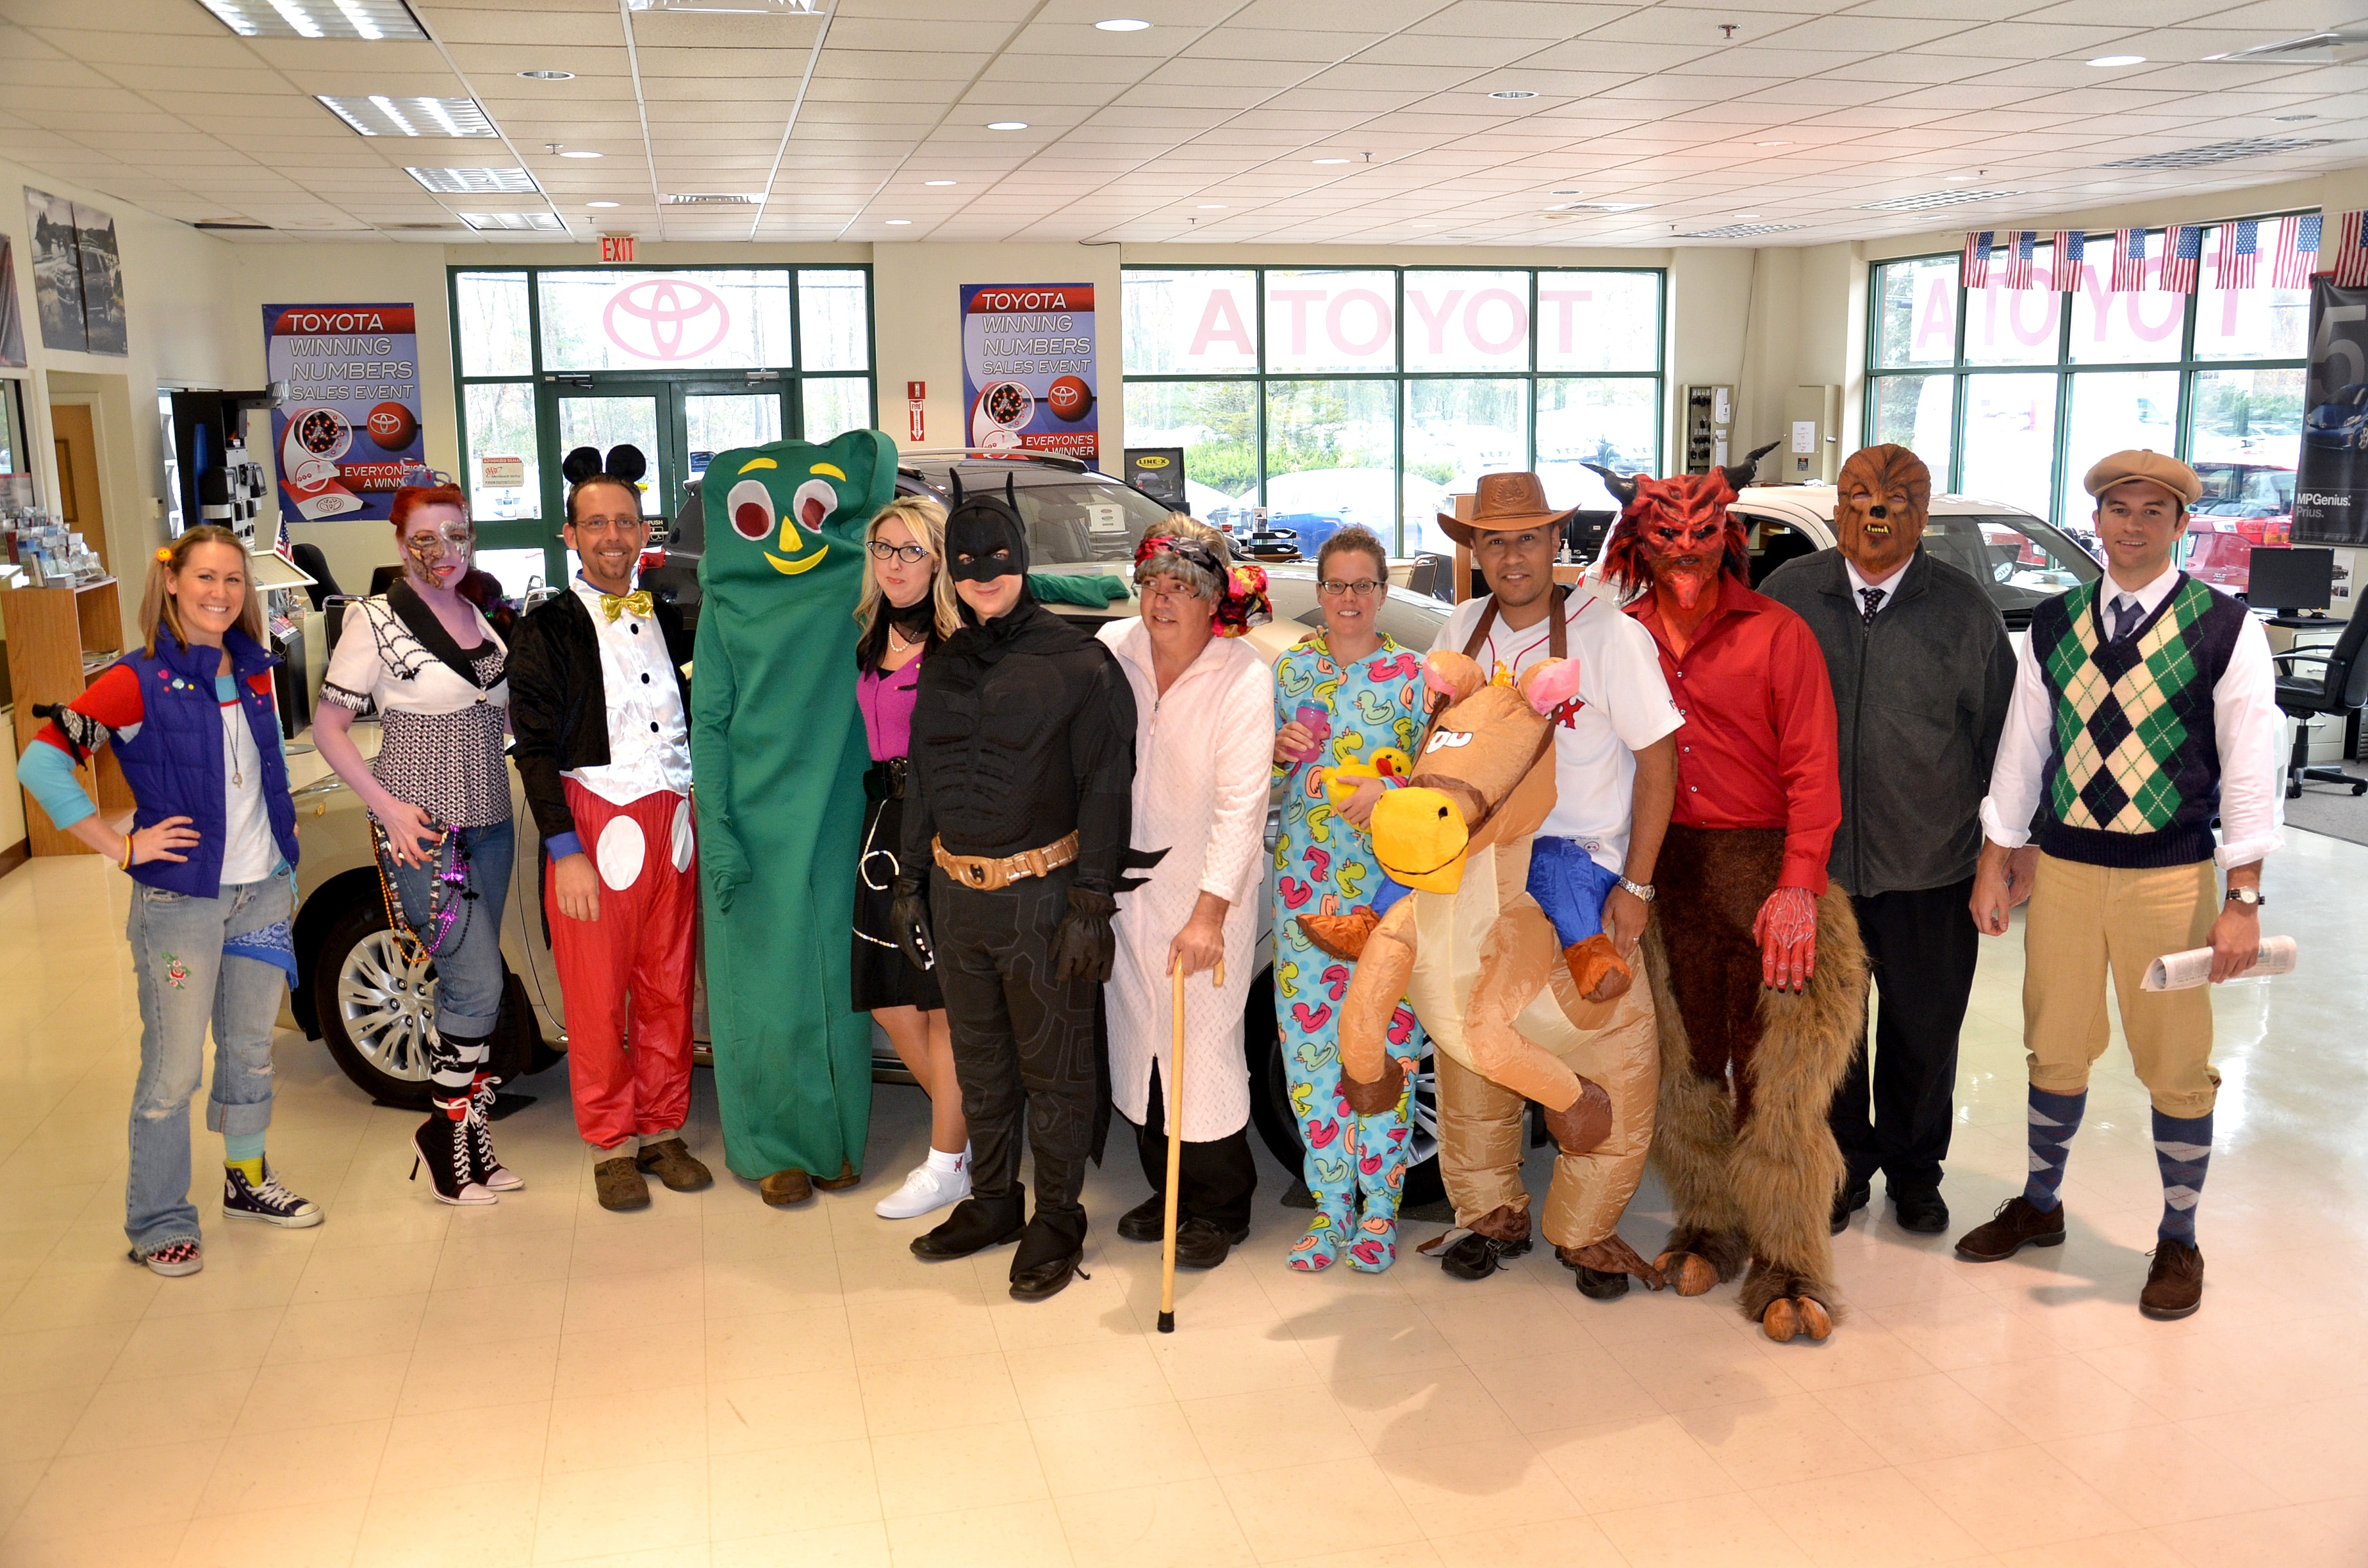 Rockingham toyota honda scion s second annual halloween costume contest was spooktacular we had everything from punky brewster and a 50 s sock hop girl to